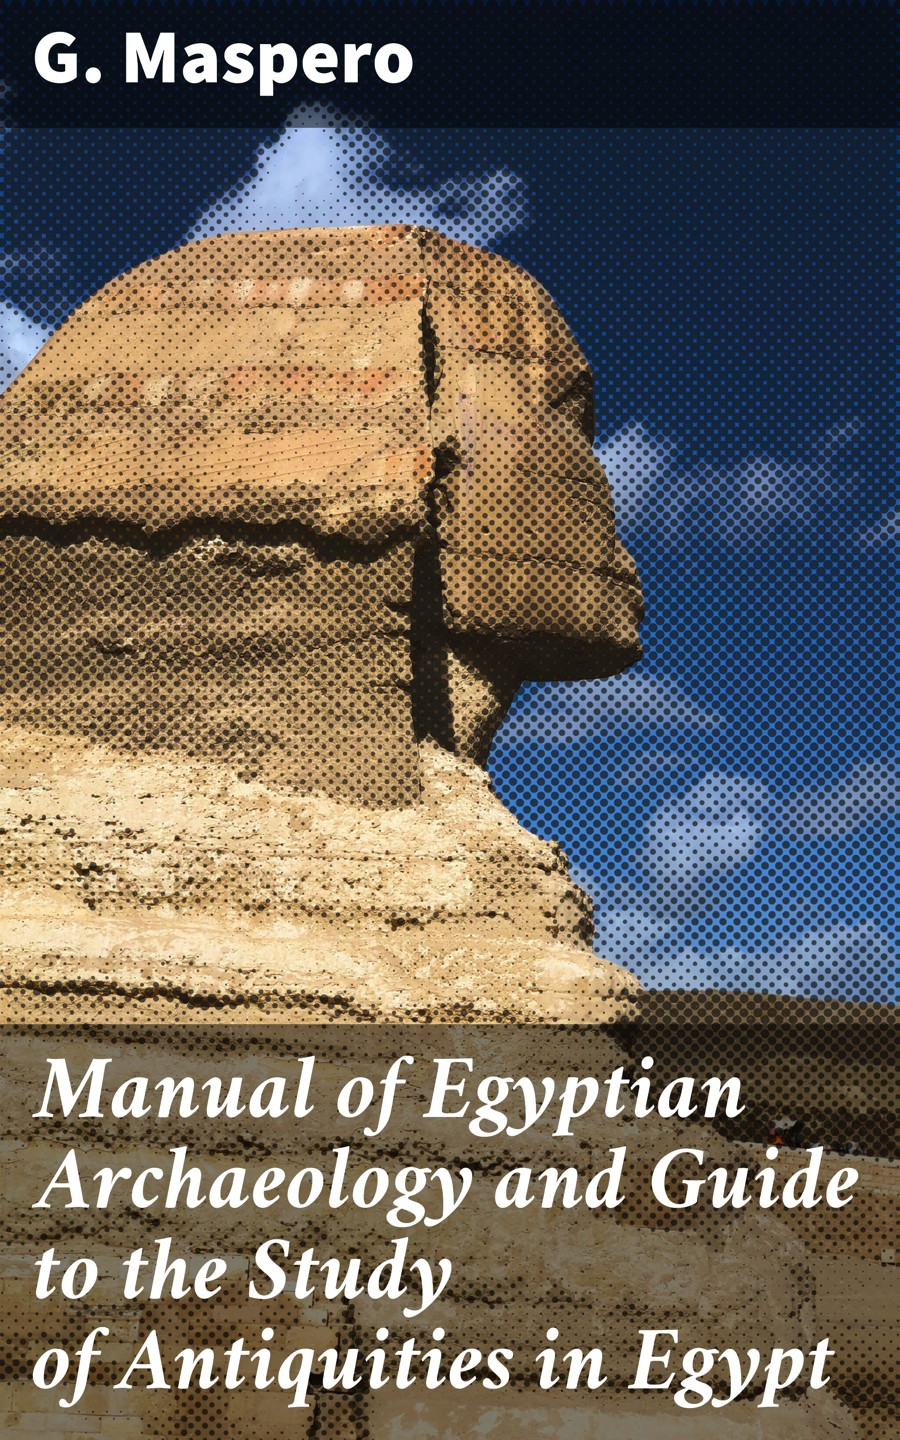 G. Maspero Manual of Egyptian Archaeology and Guide to the Study of Antiquities in Egypt study of il 1ra